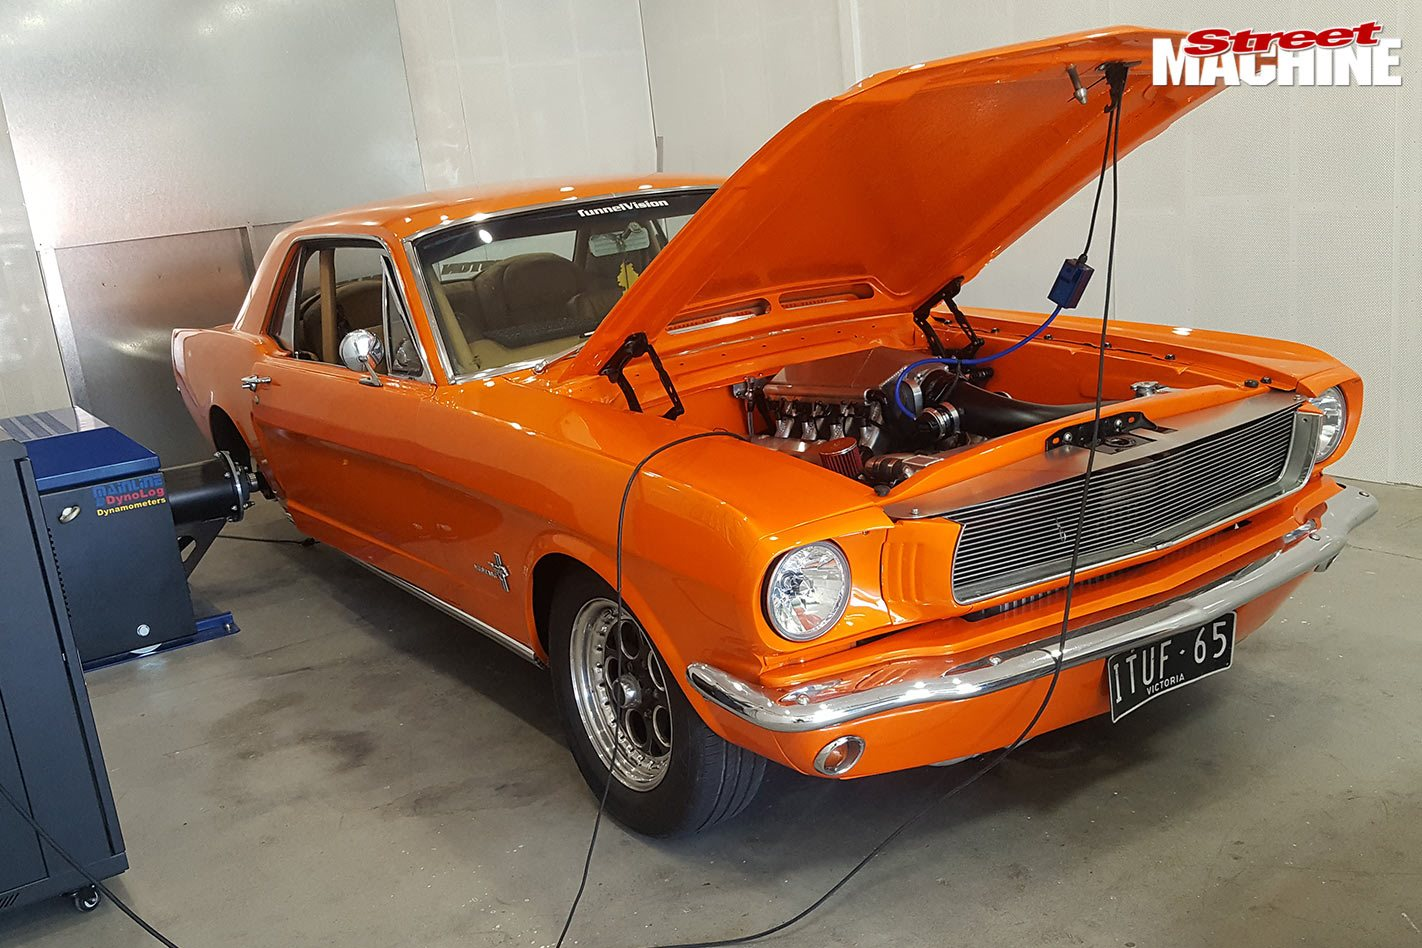 1965 mustang with a twin turbo 427 windsor makes over 1500hp video